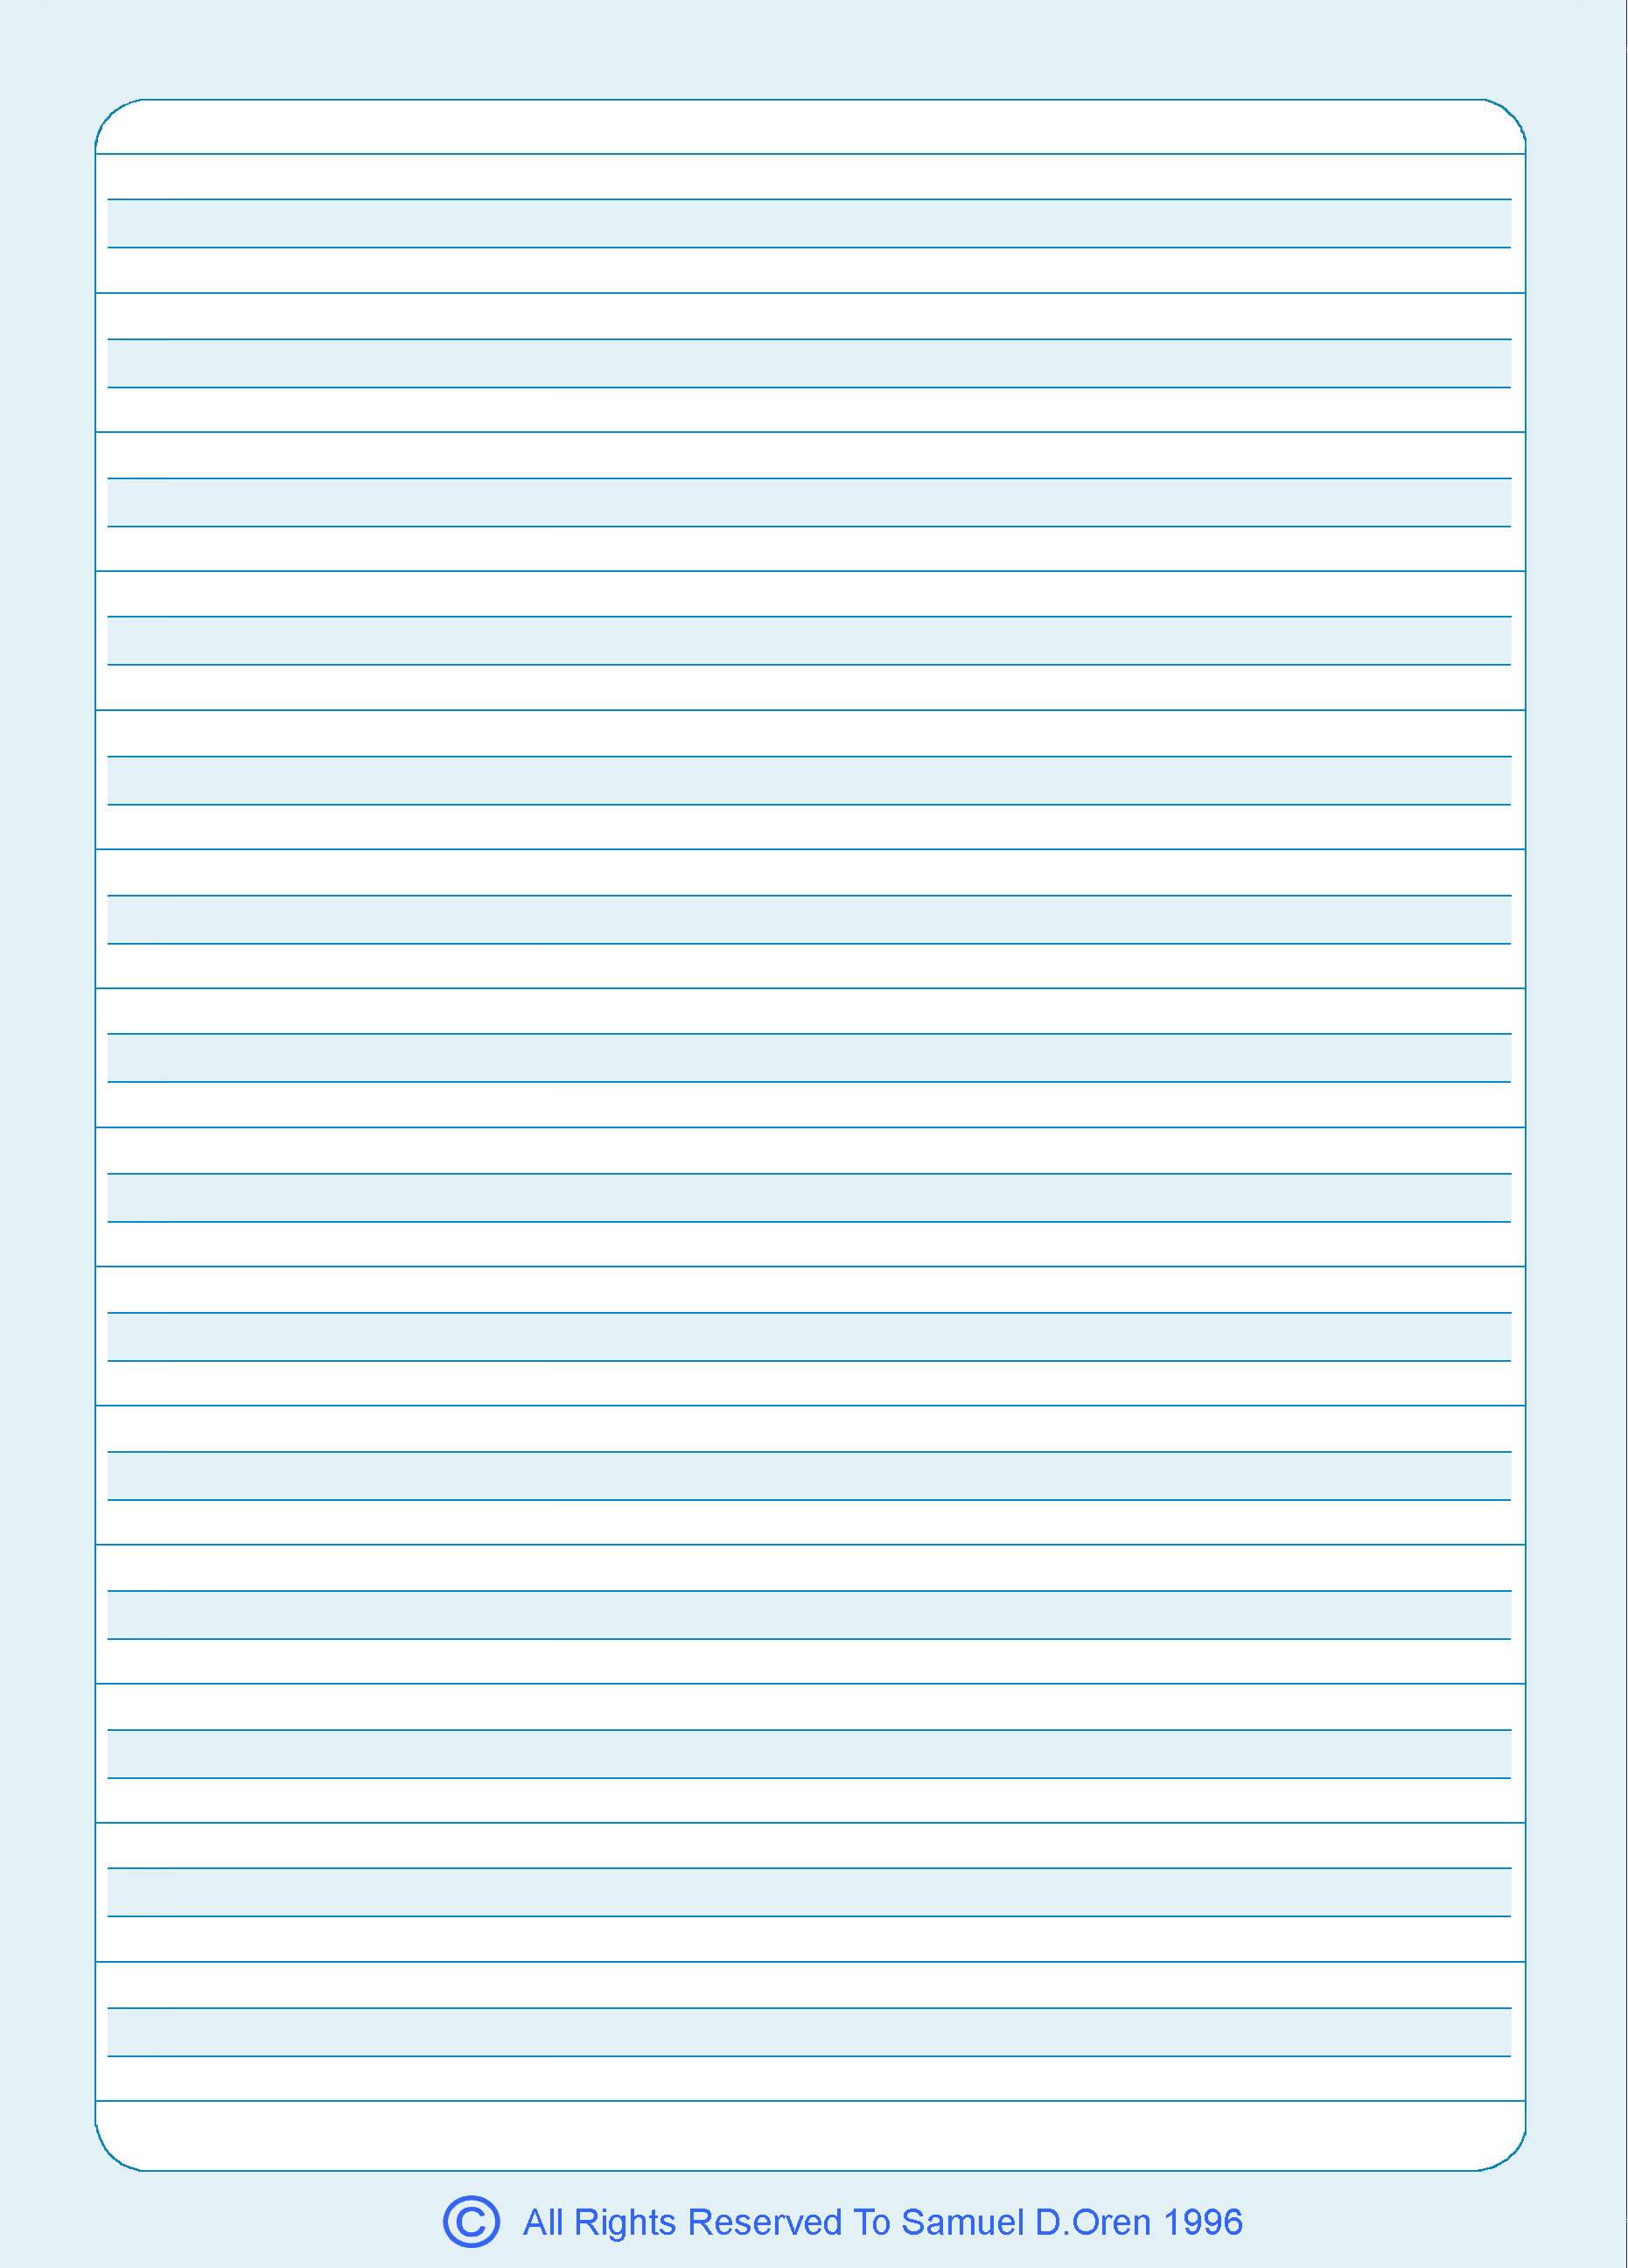 Set of 10 UnBroken Line Notebooks with 14 rows